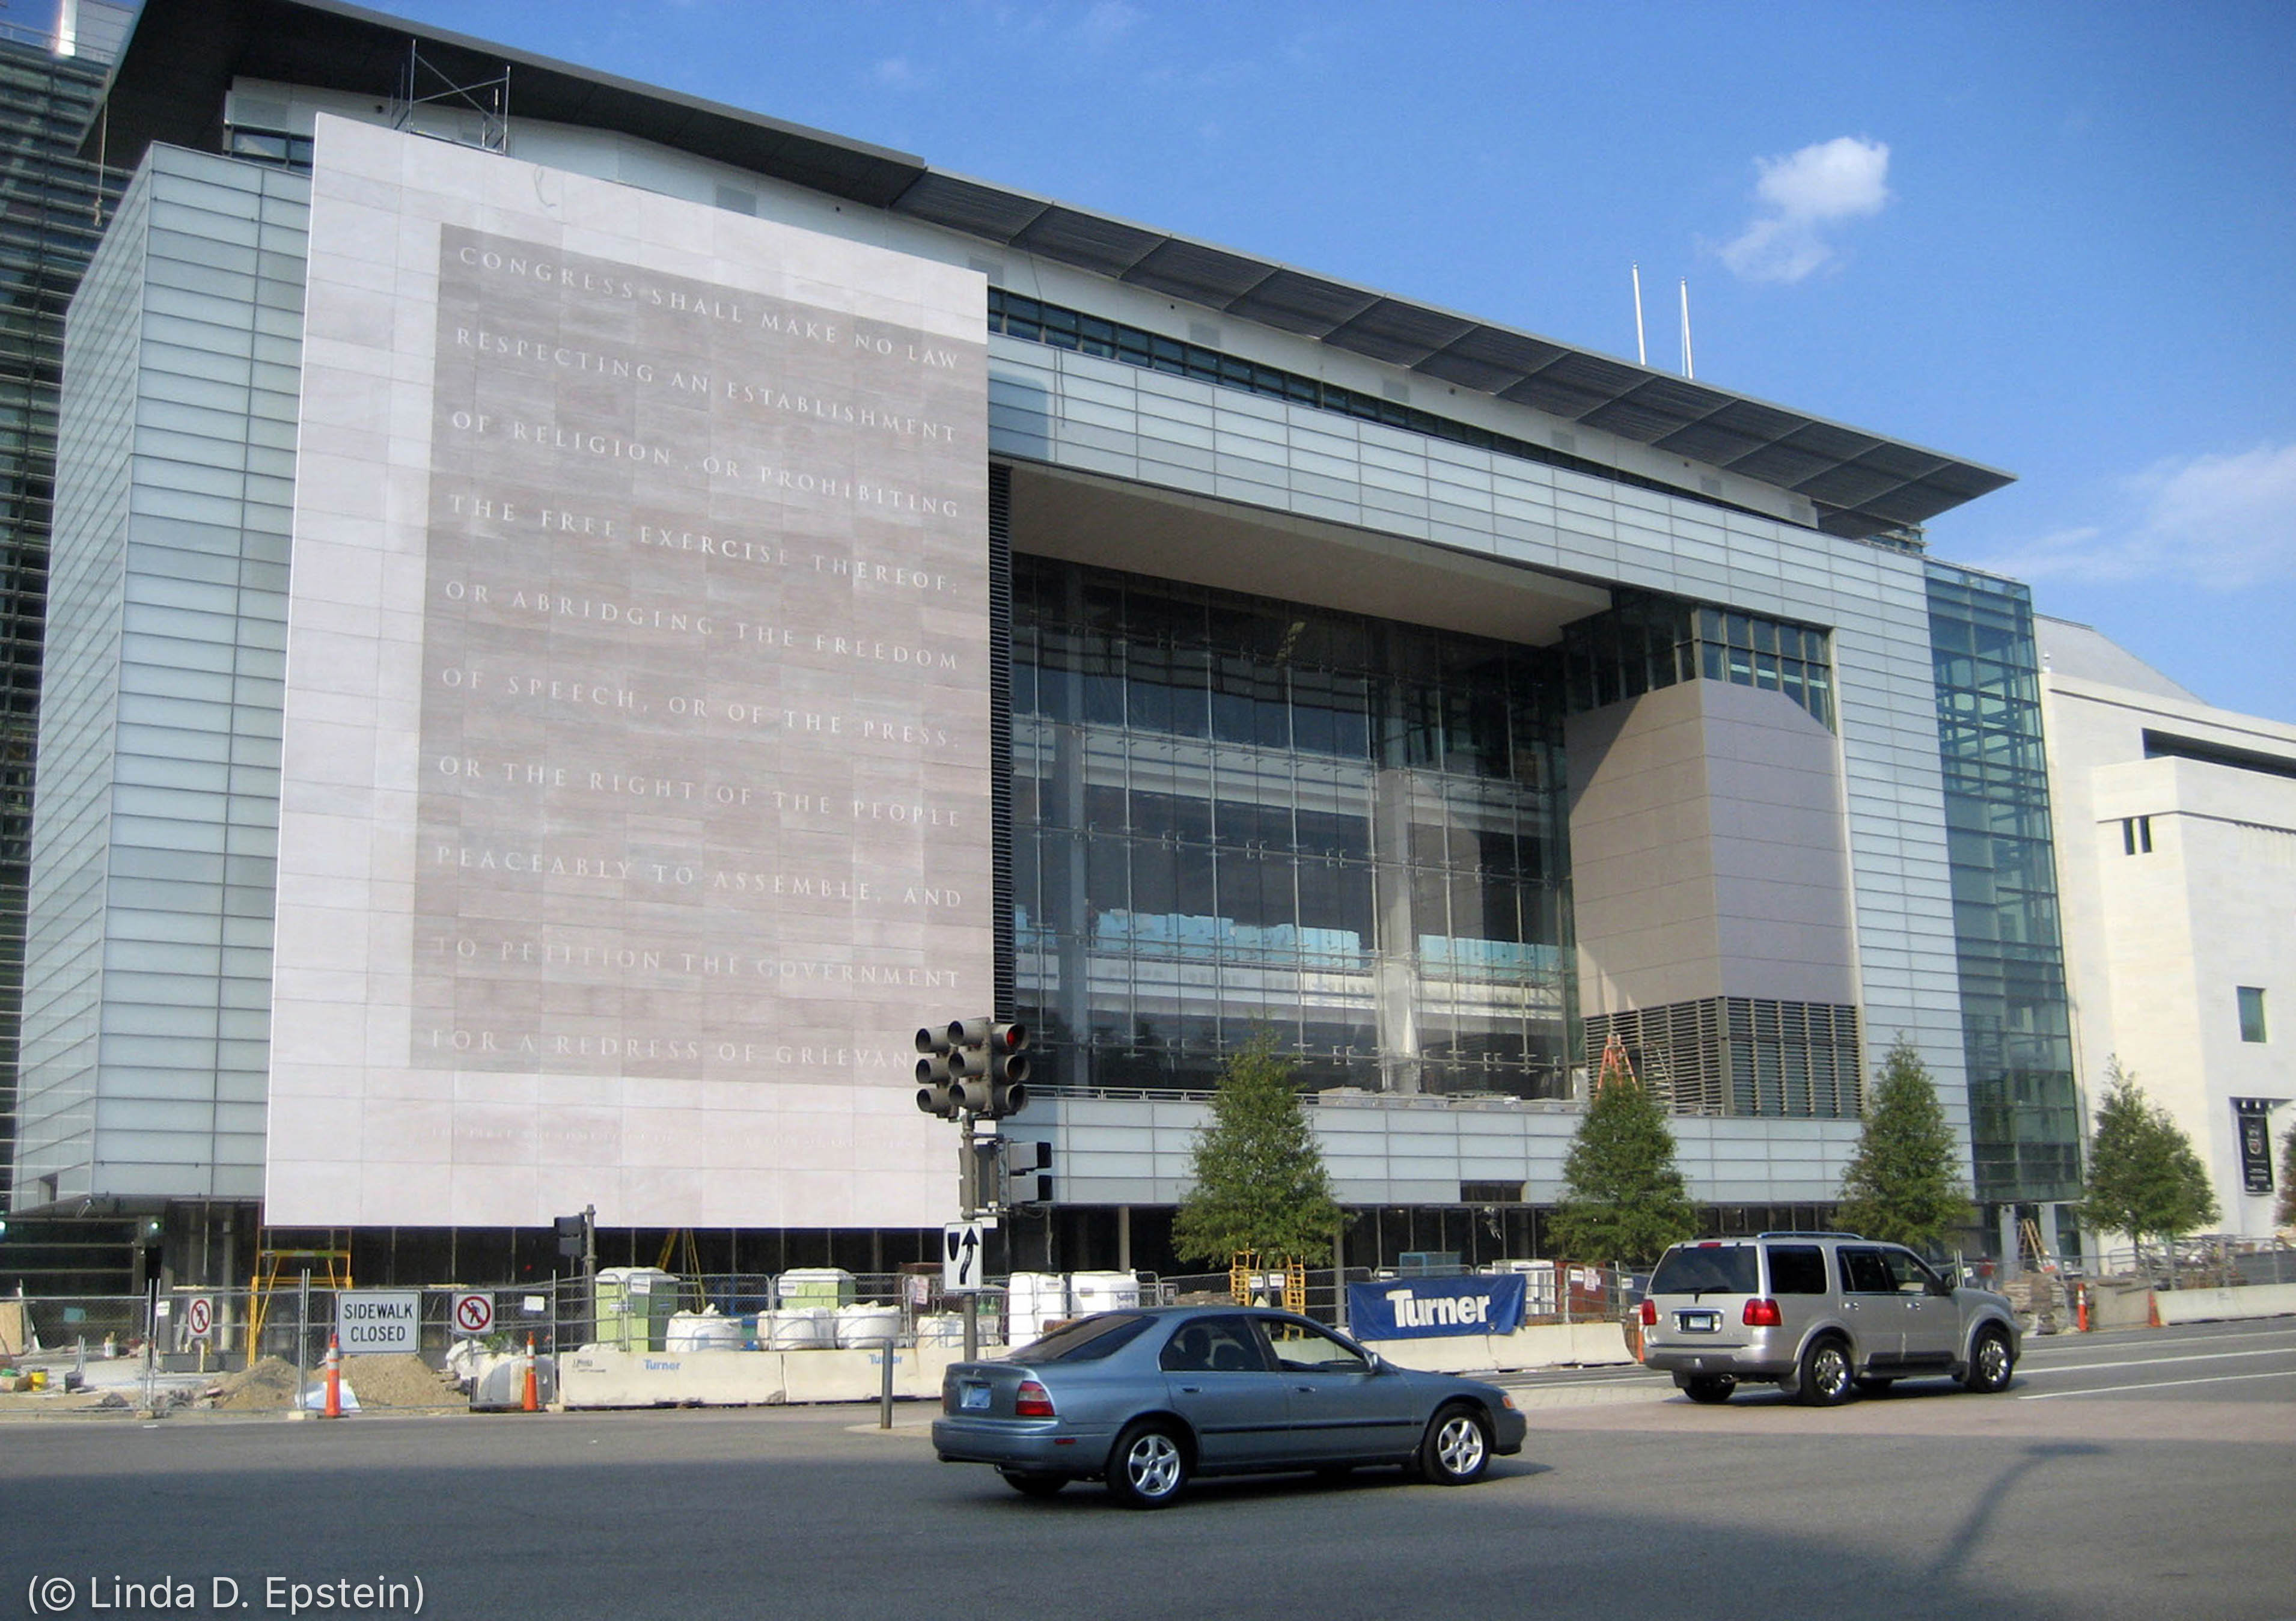 Facade of the former Newseum building in Washington, with sidewalk blocked off and cars passing by (© Linda D. Epstein)